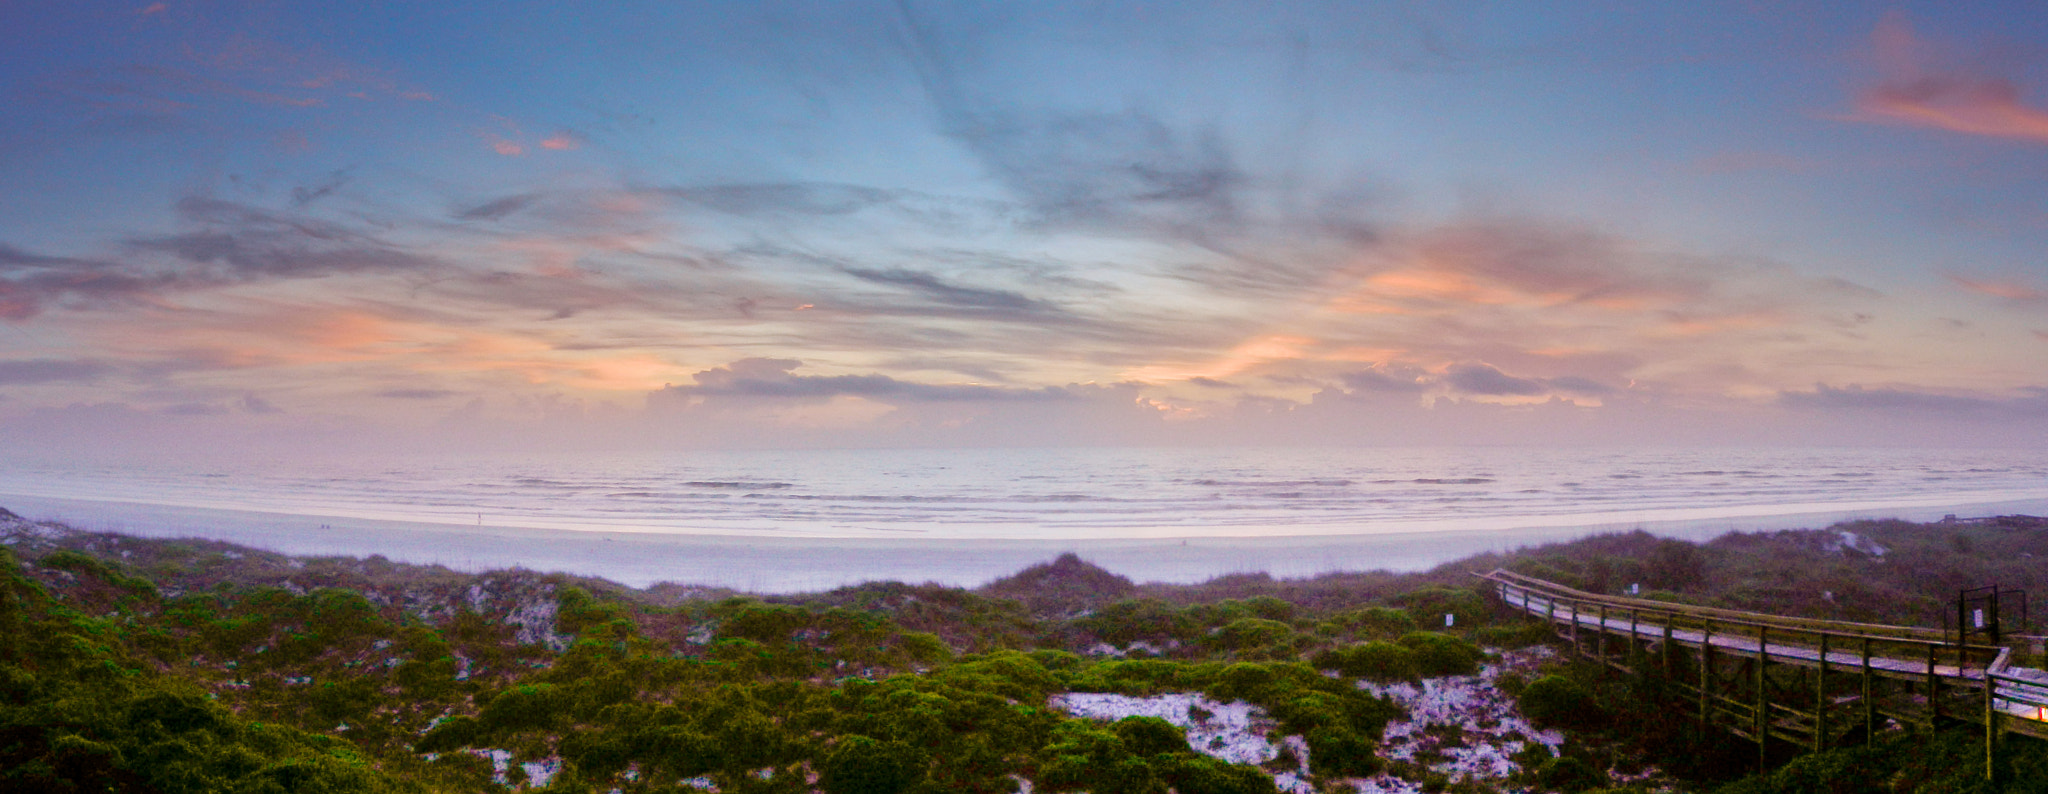 Photograph Crescent Beach Sunrise Panorama by Stephen Ingraham on 500px